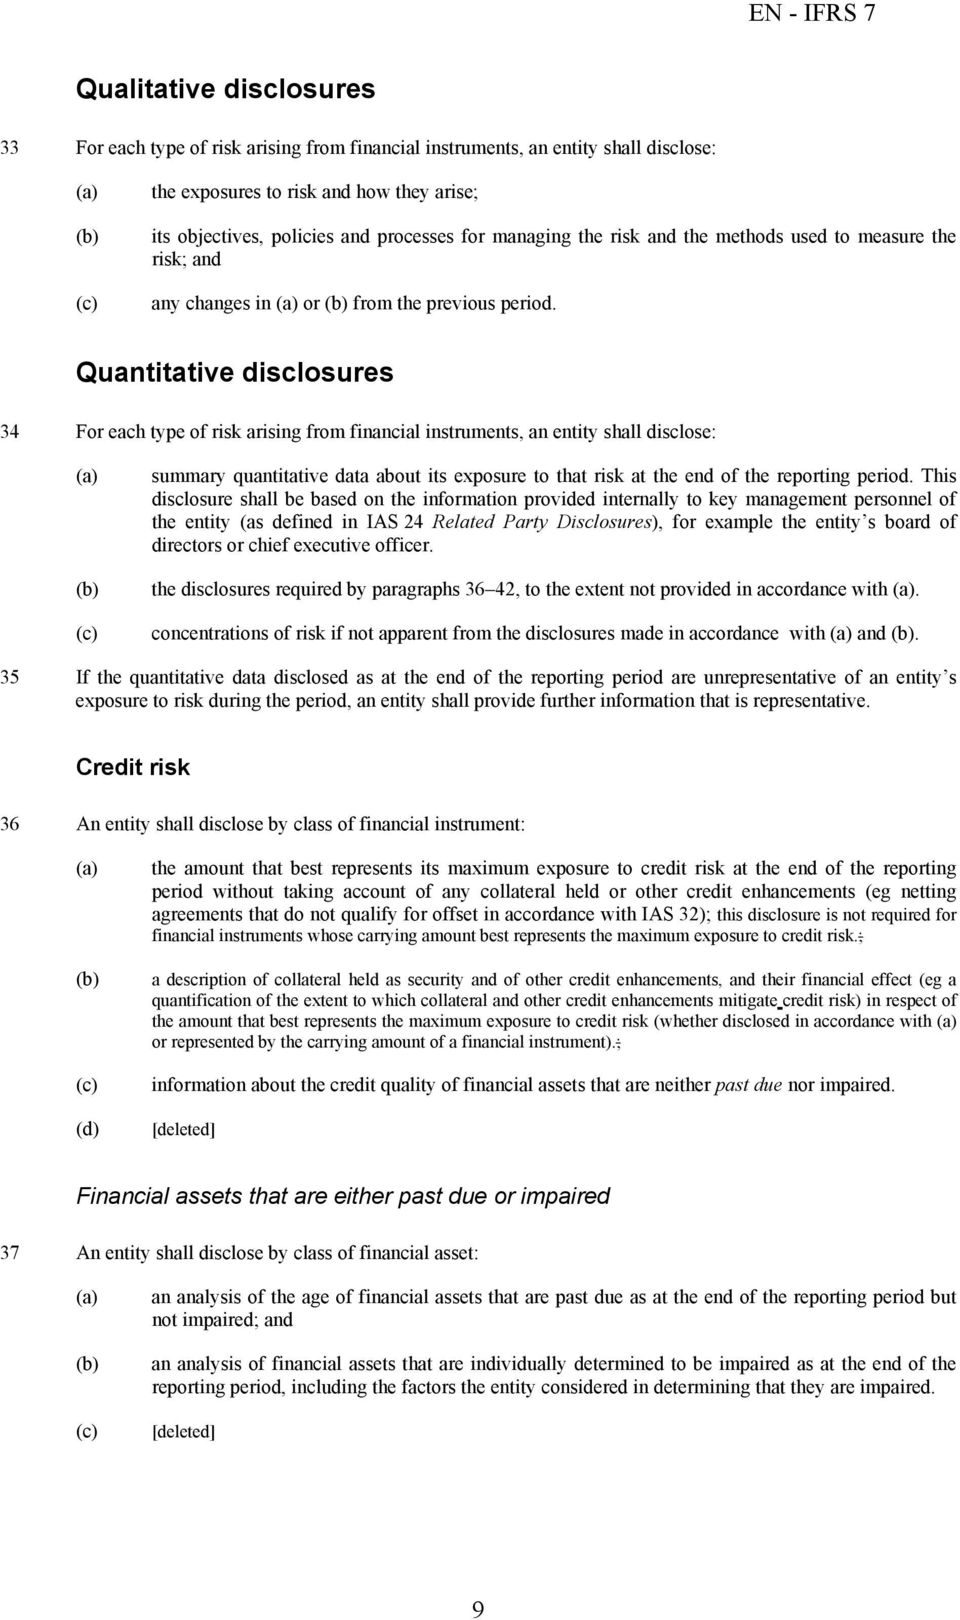 Quantitative disclosures 34 For each type of risk arising from financial instruments, an entity shall disclose: summary quantitative data about its exposure to that risk at the end of the reporting